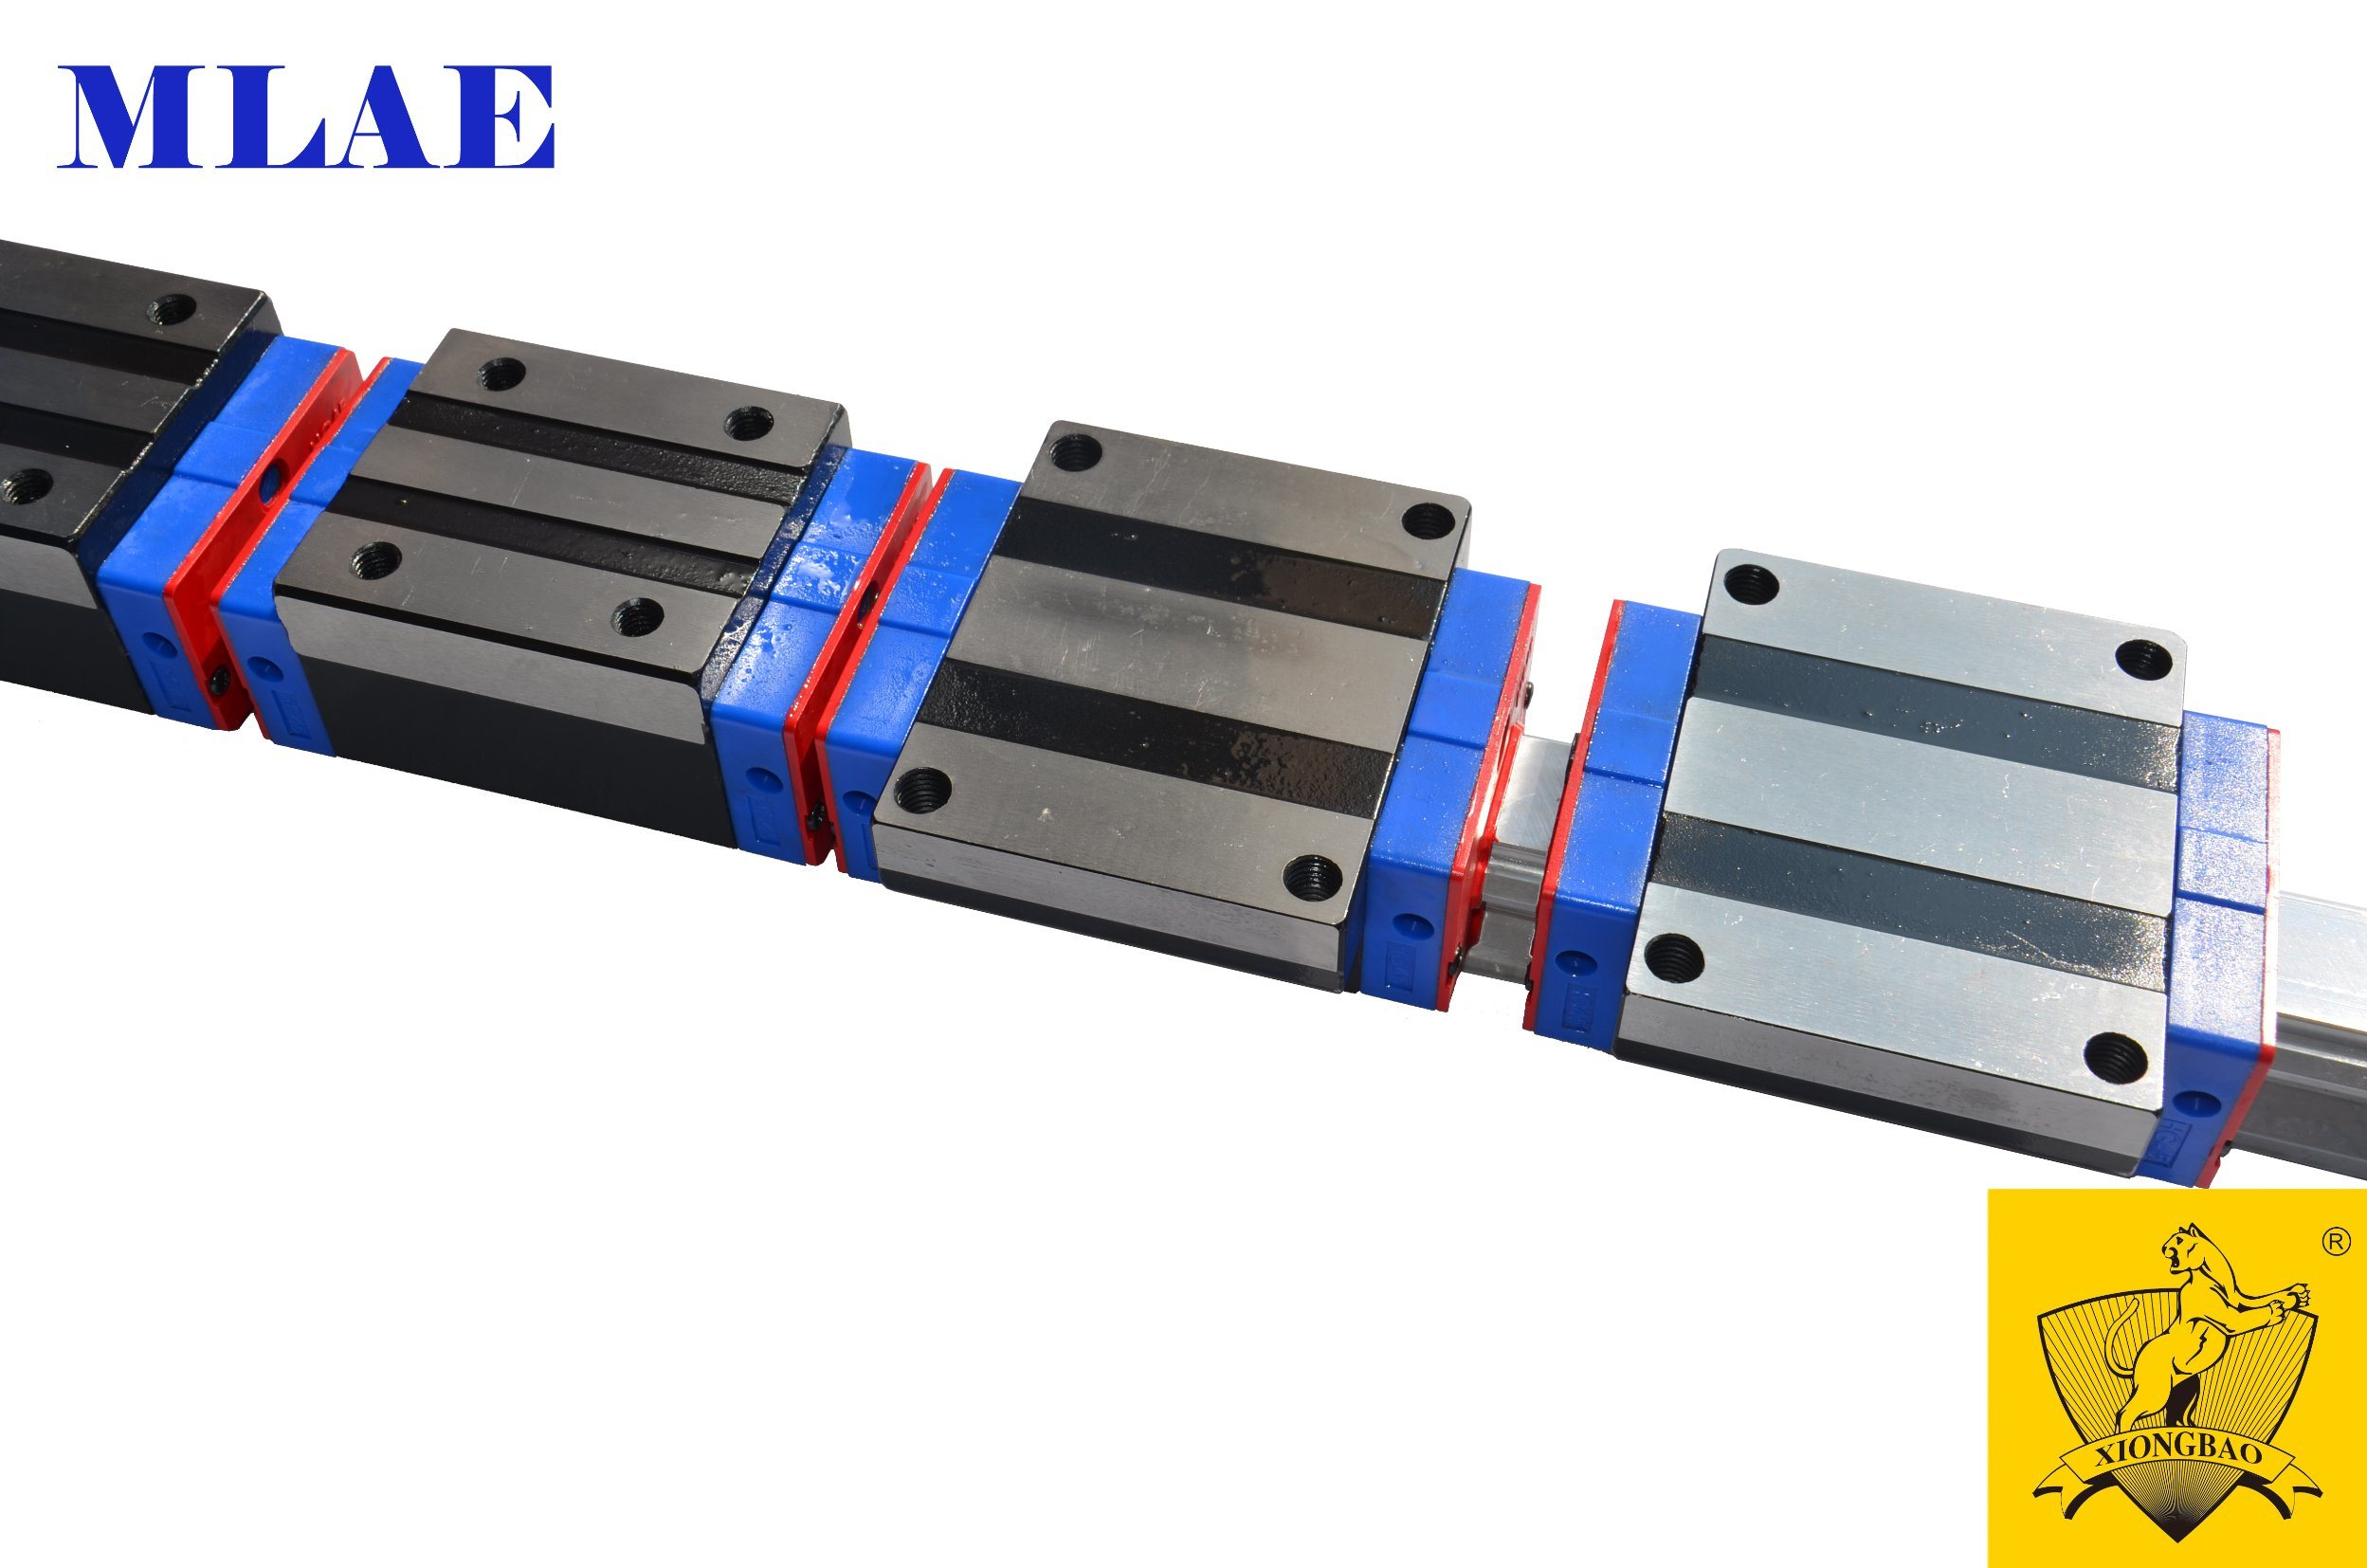 Mlae Xbd Linear Rail by Wholesale Price